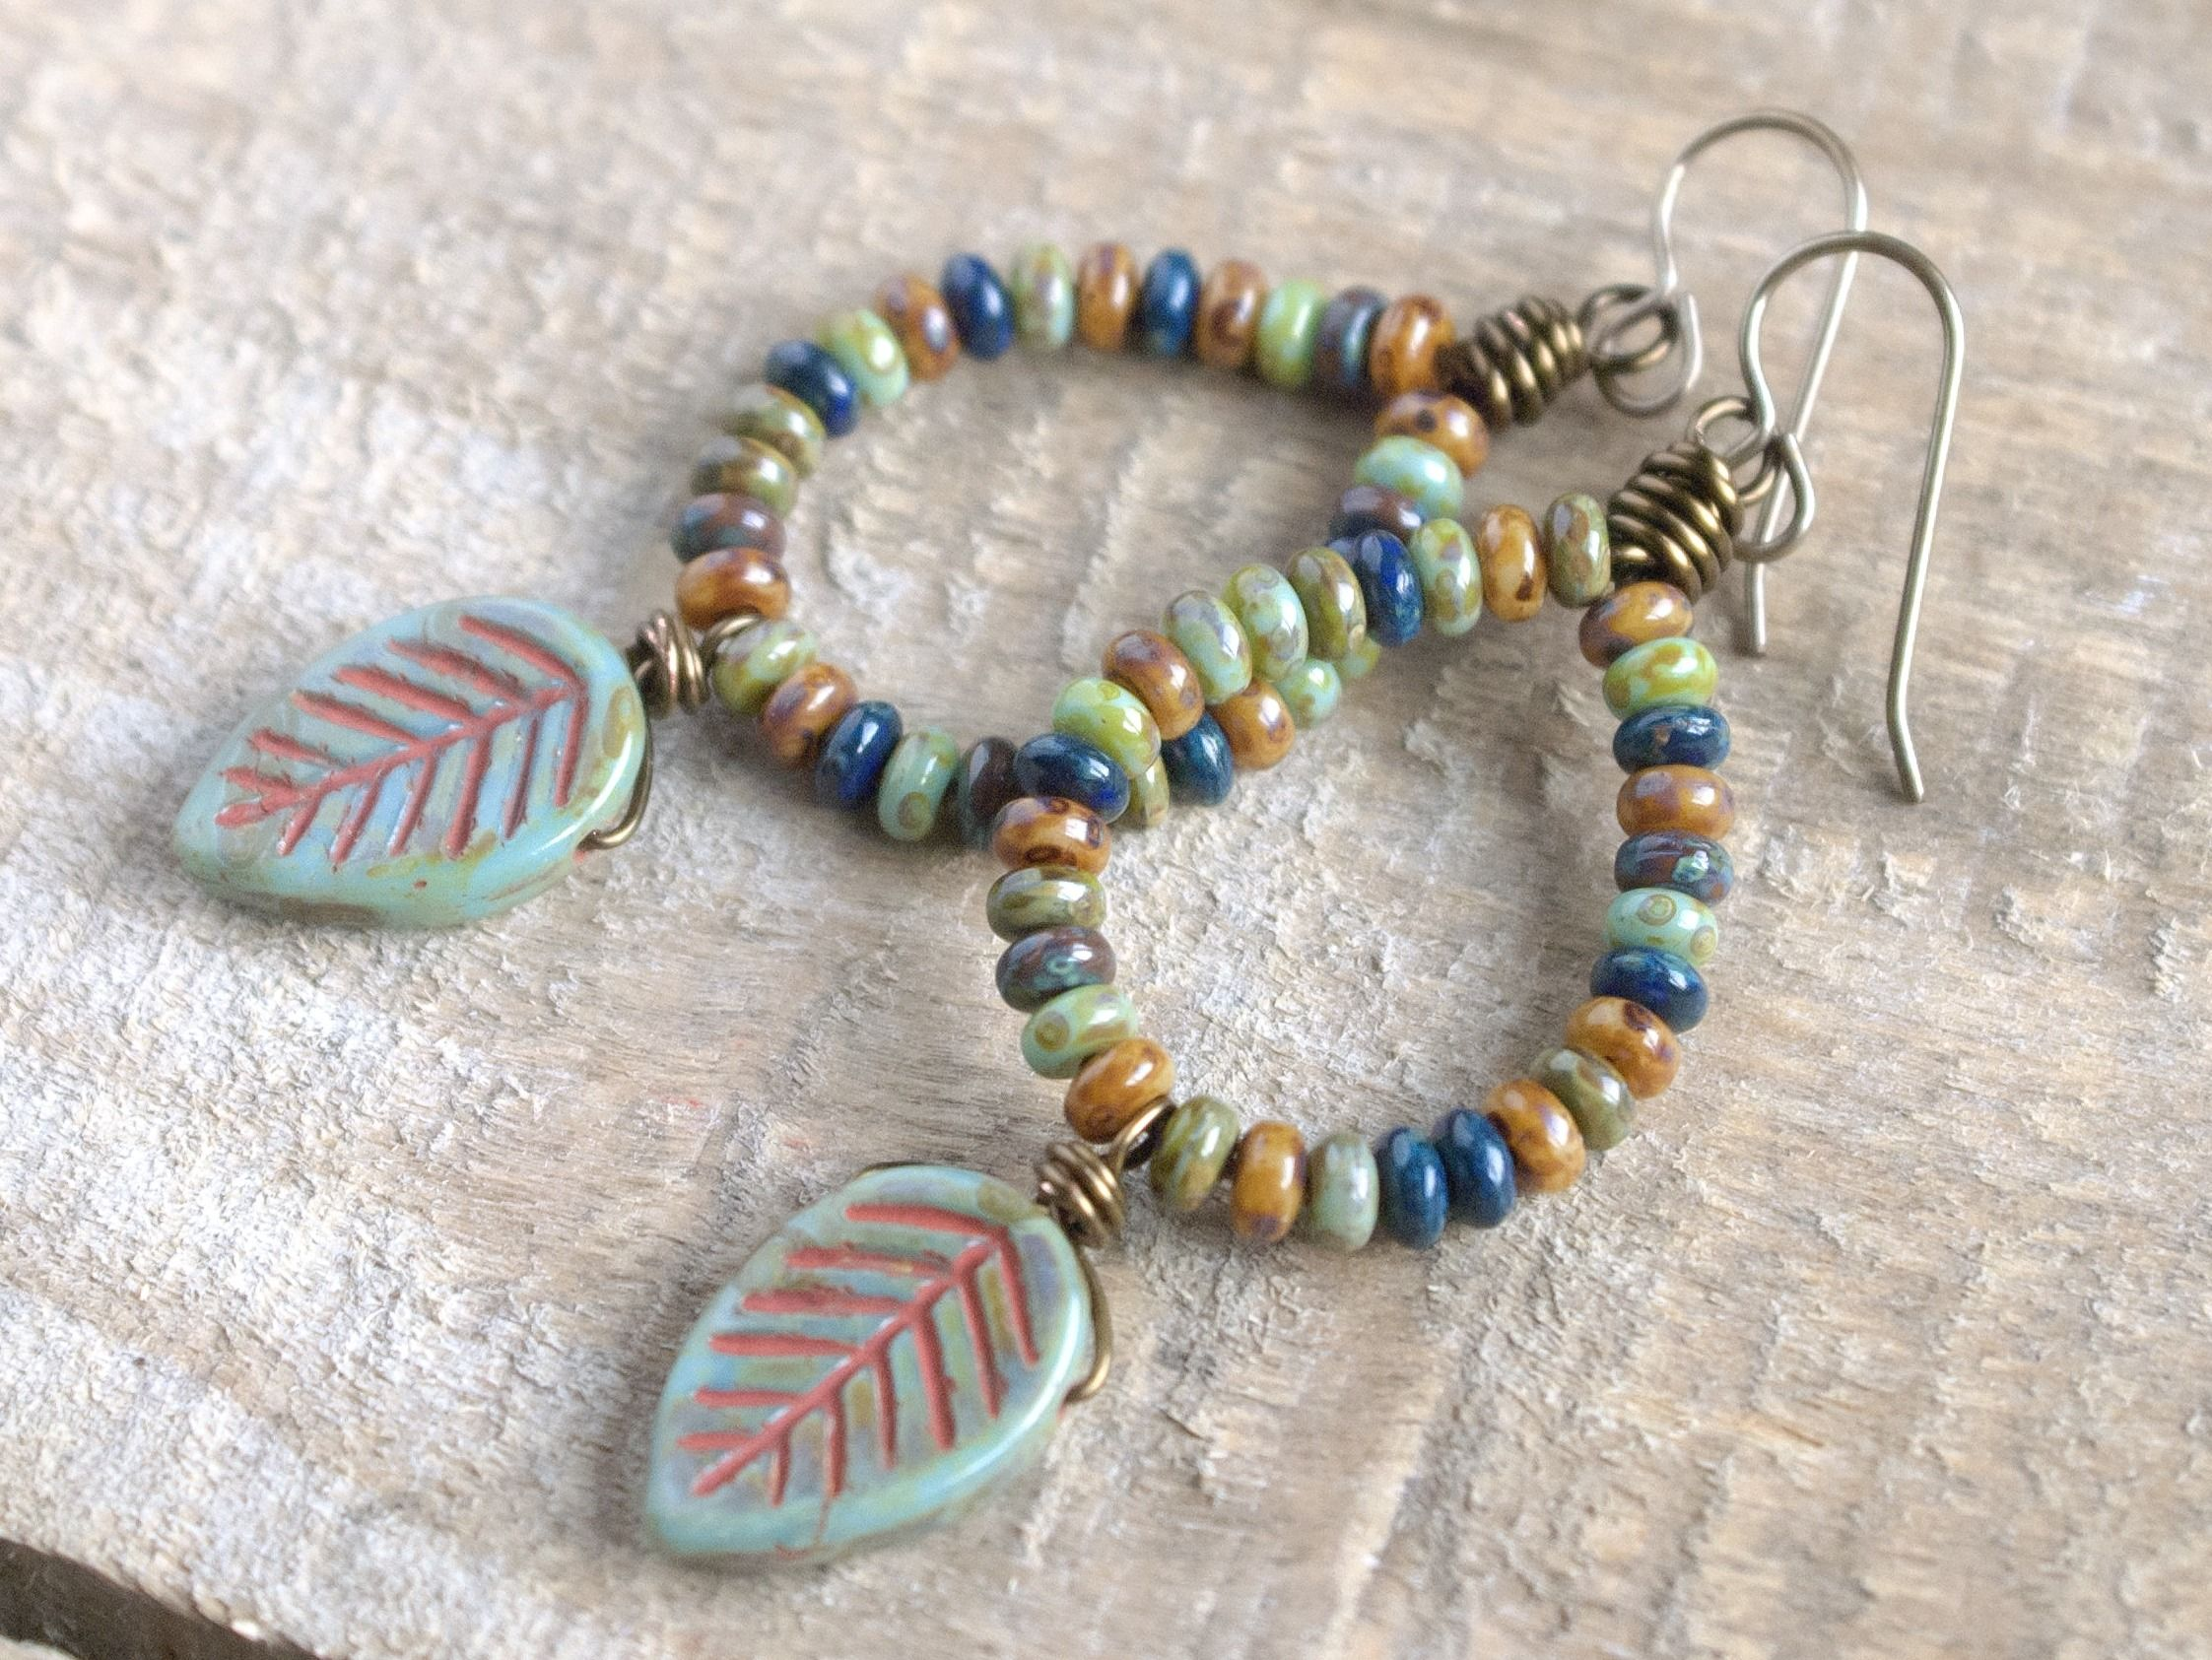 This pair of long, boho style earrings are just perfect for Autumn! They have been made using rustic turquoise-green Czech glass leaf beads. The leaves have a rusty red Picasso finish which highlights their beautiful carved pattern. Above the leaves are Czech glass donut beads in earthy shades of brown, olive, mustard and navy. These tiny beads have been strung one by one onto hand formed wire hoops.